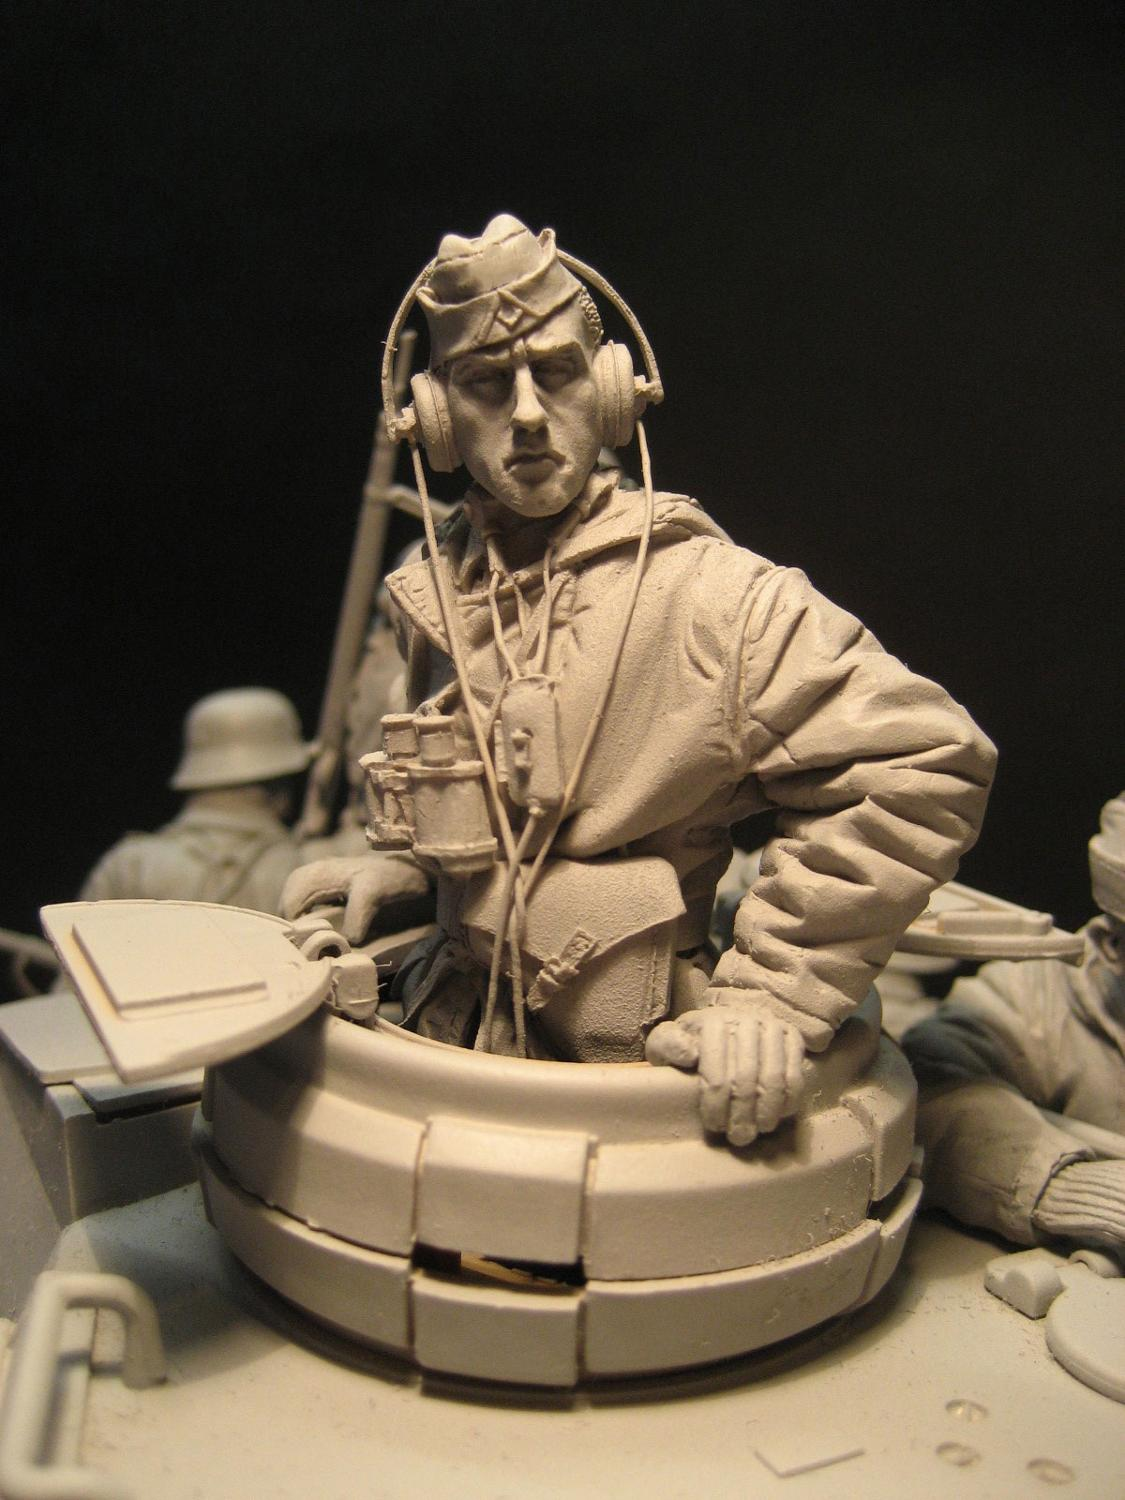 1/16 Resin Figures Tank Driver Soldiers Unpainted And Unassembled Kit 1639D